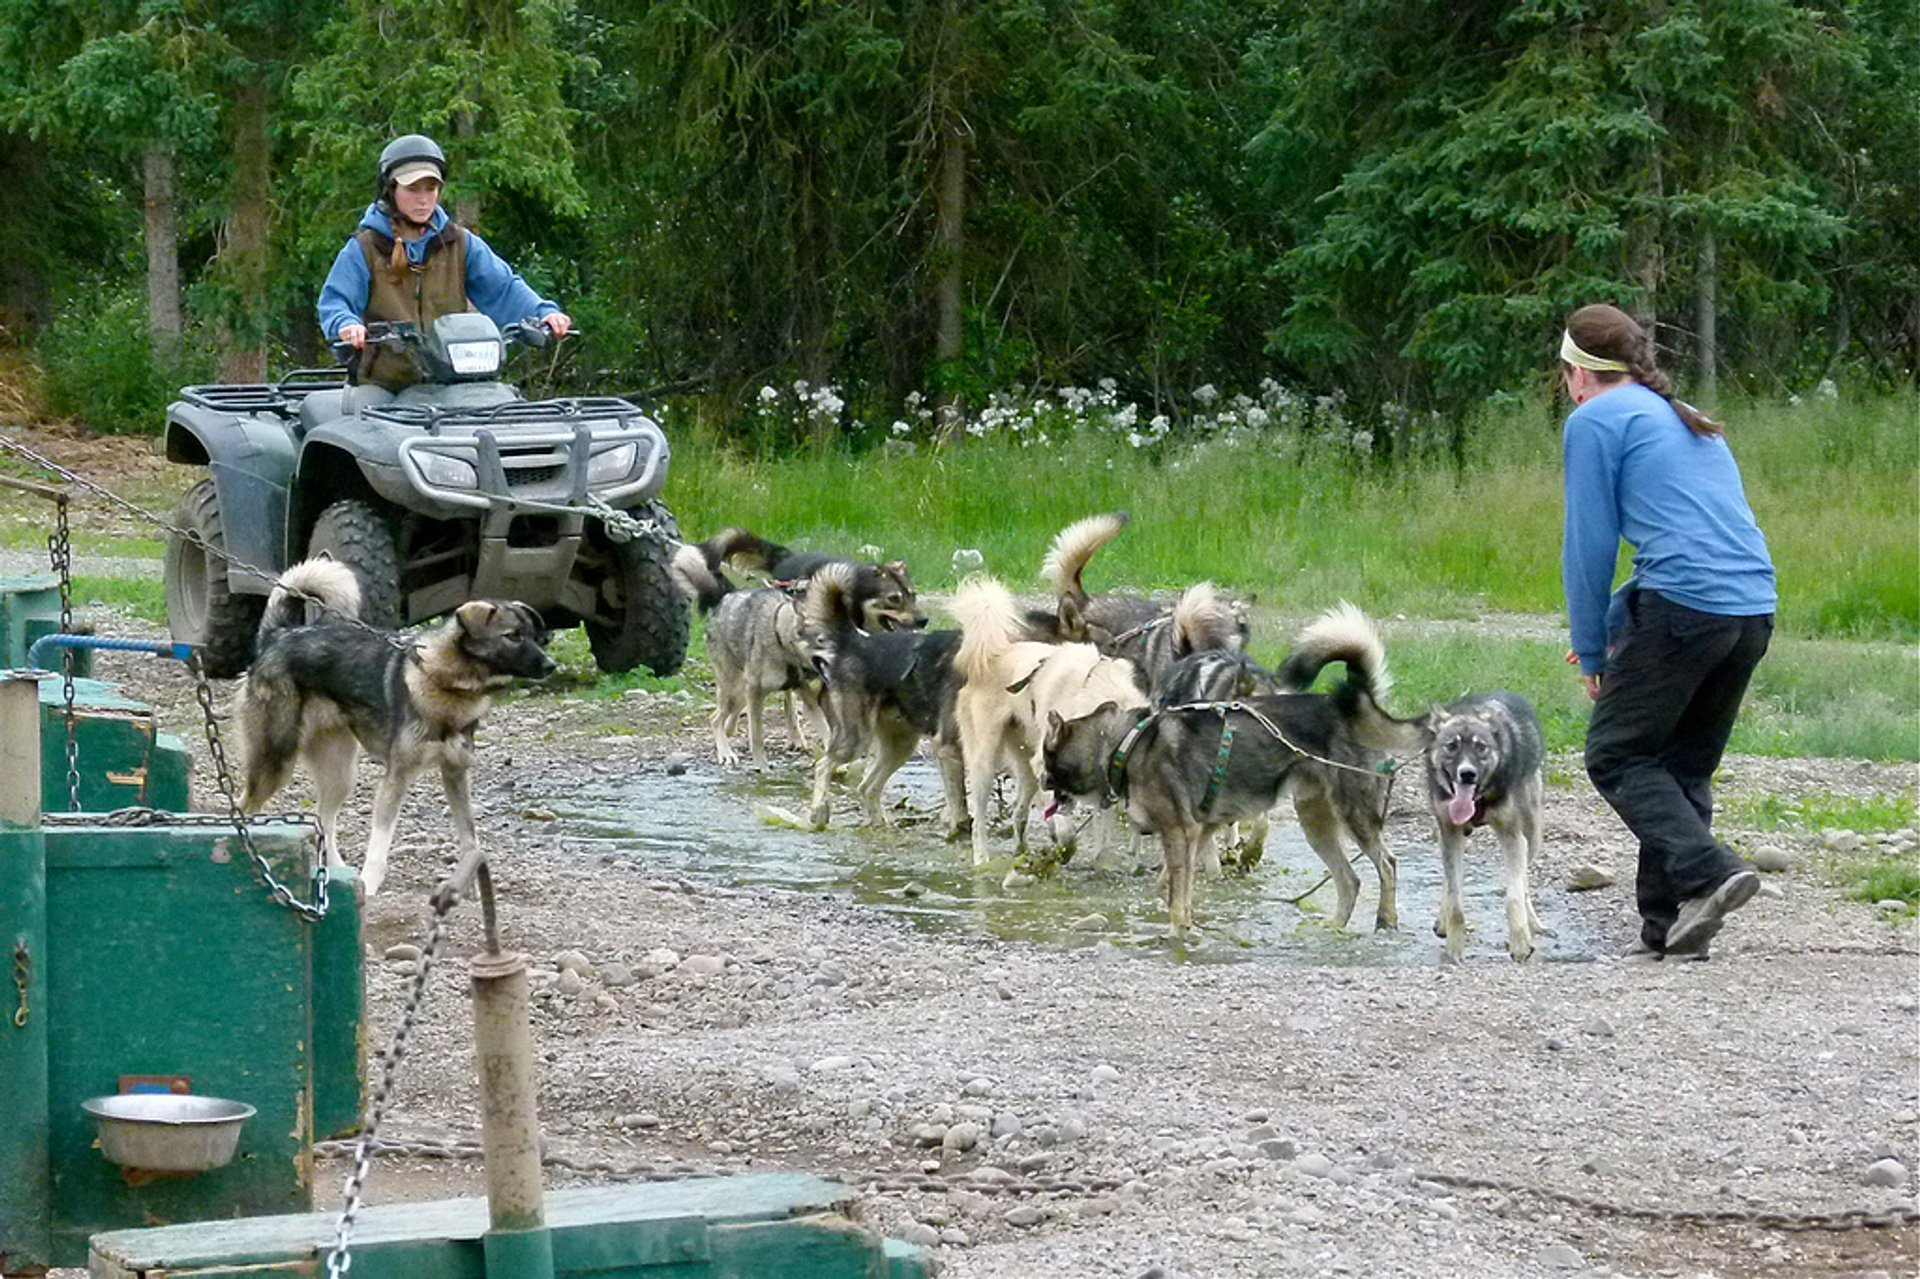 Dog-sled summer training, Iditarod, Alaska, USA 2020